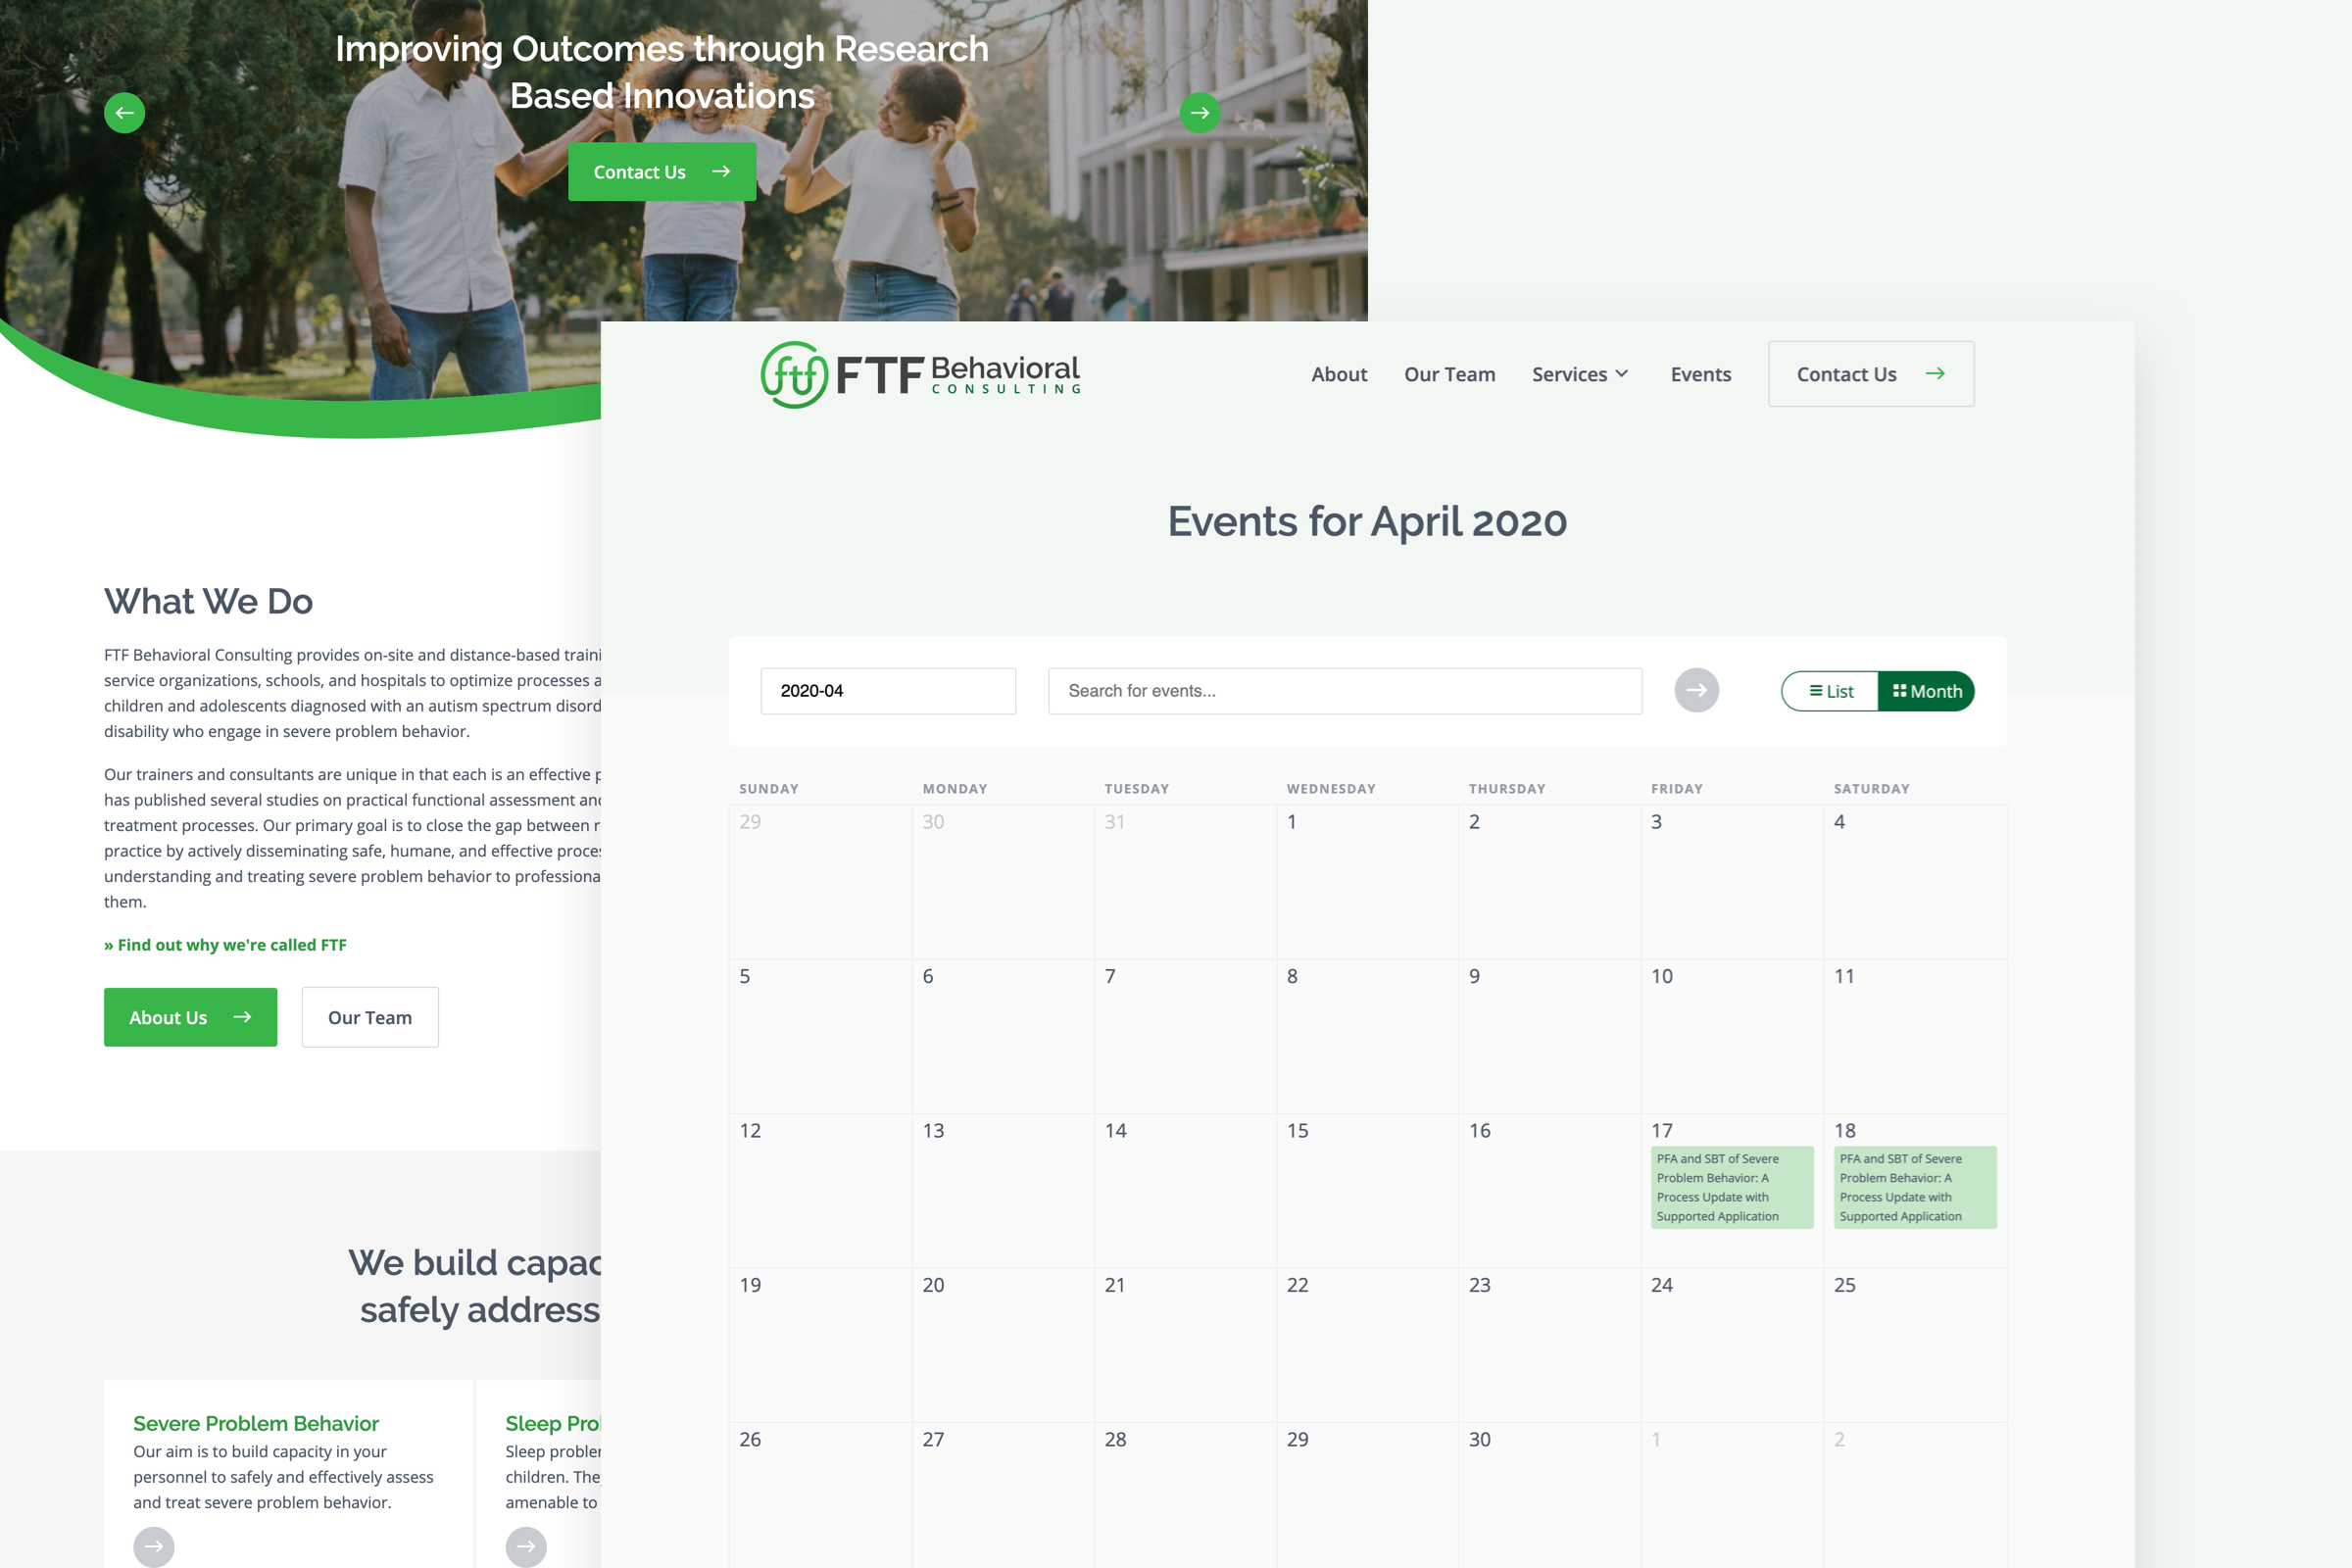 FTF Behavioral About page and events calendar component